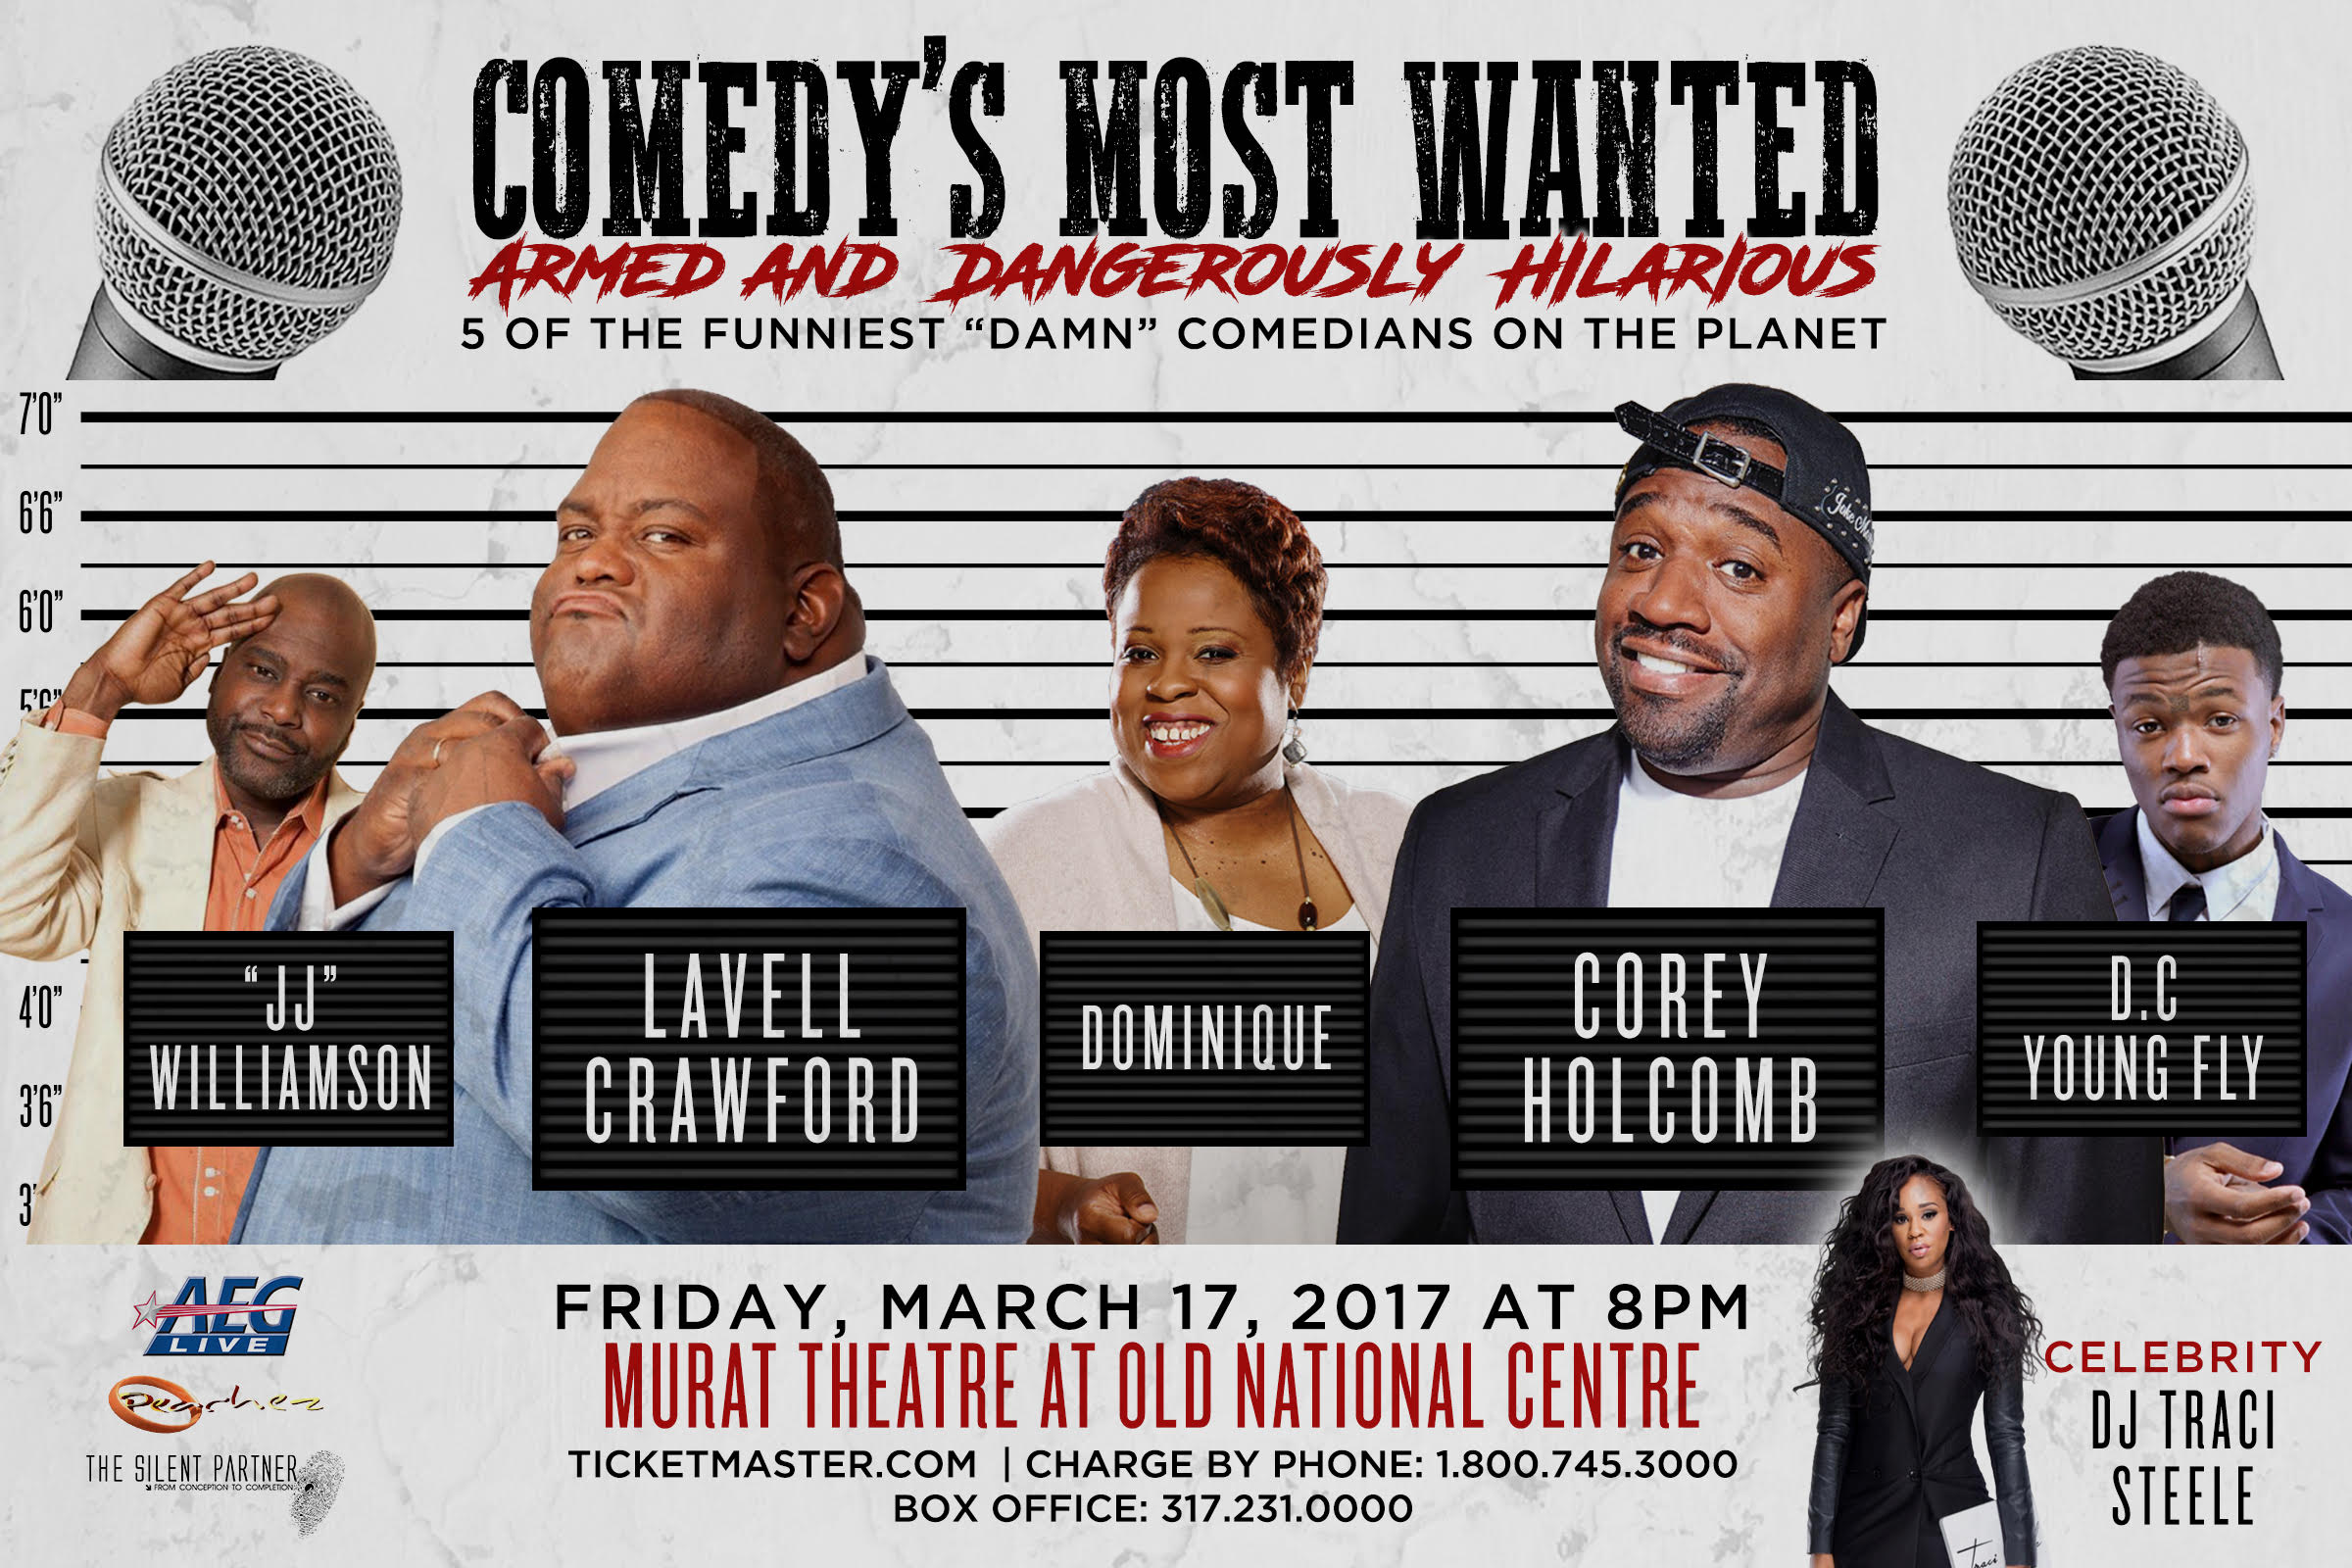 Comedy's Most Wanted Flyer